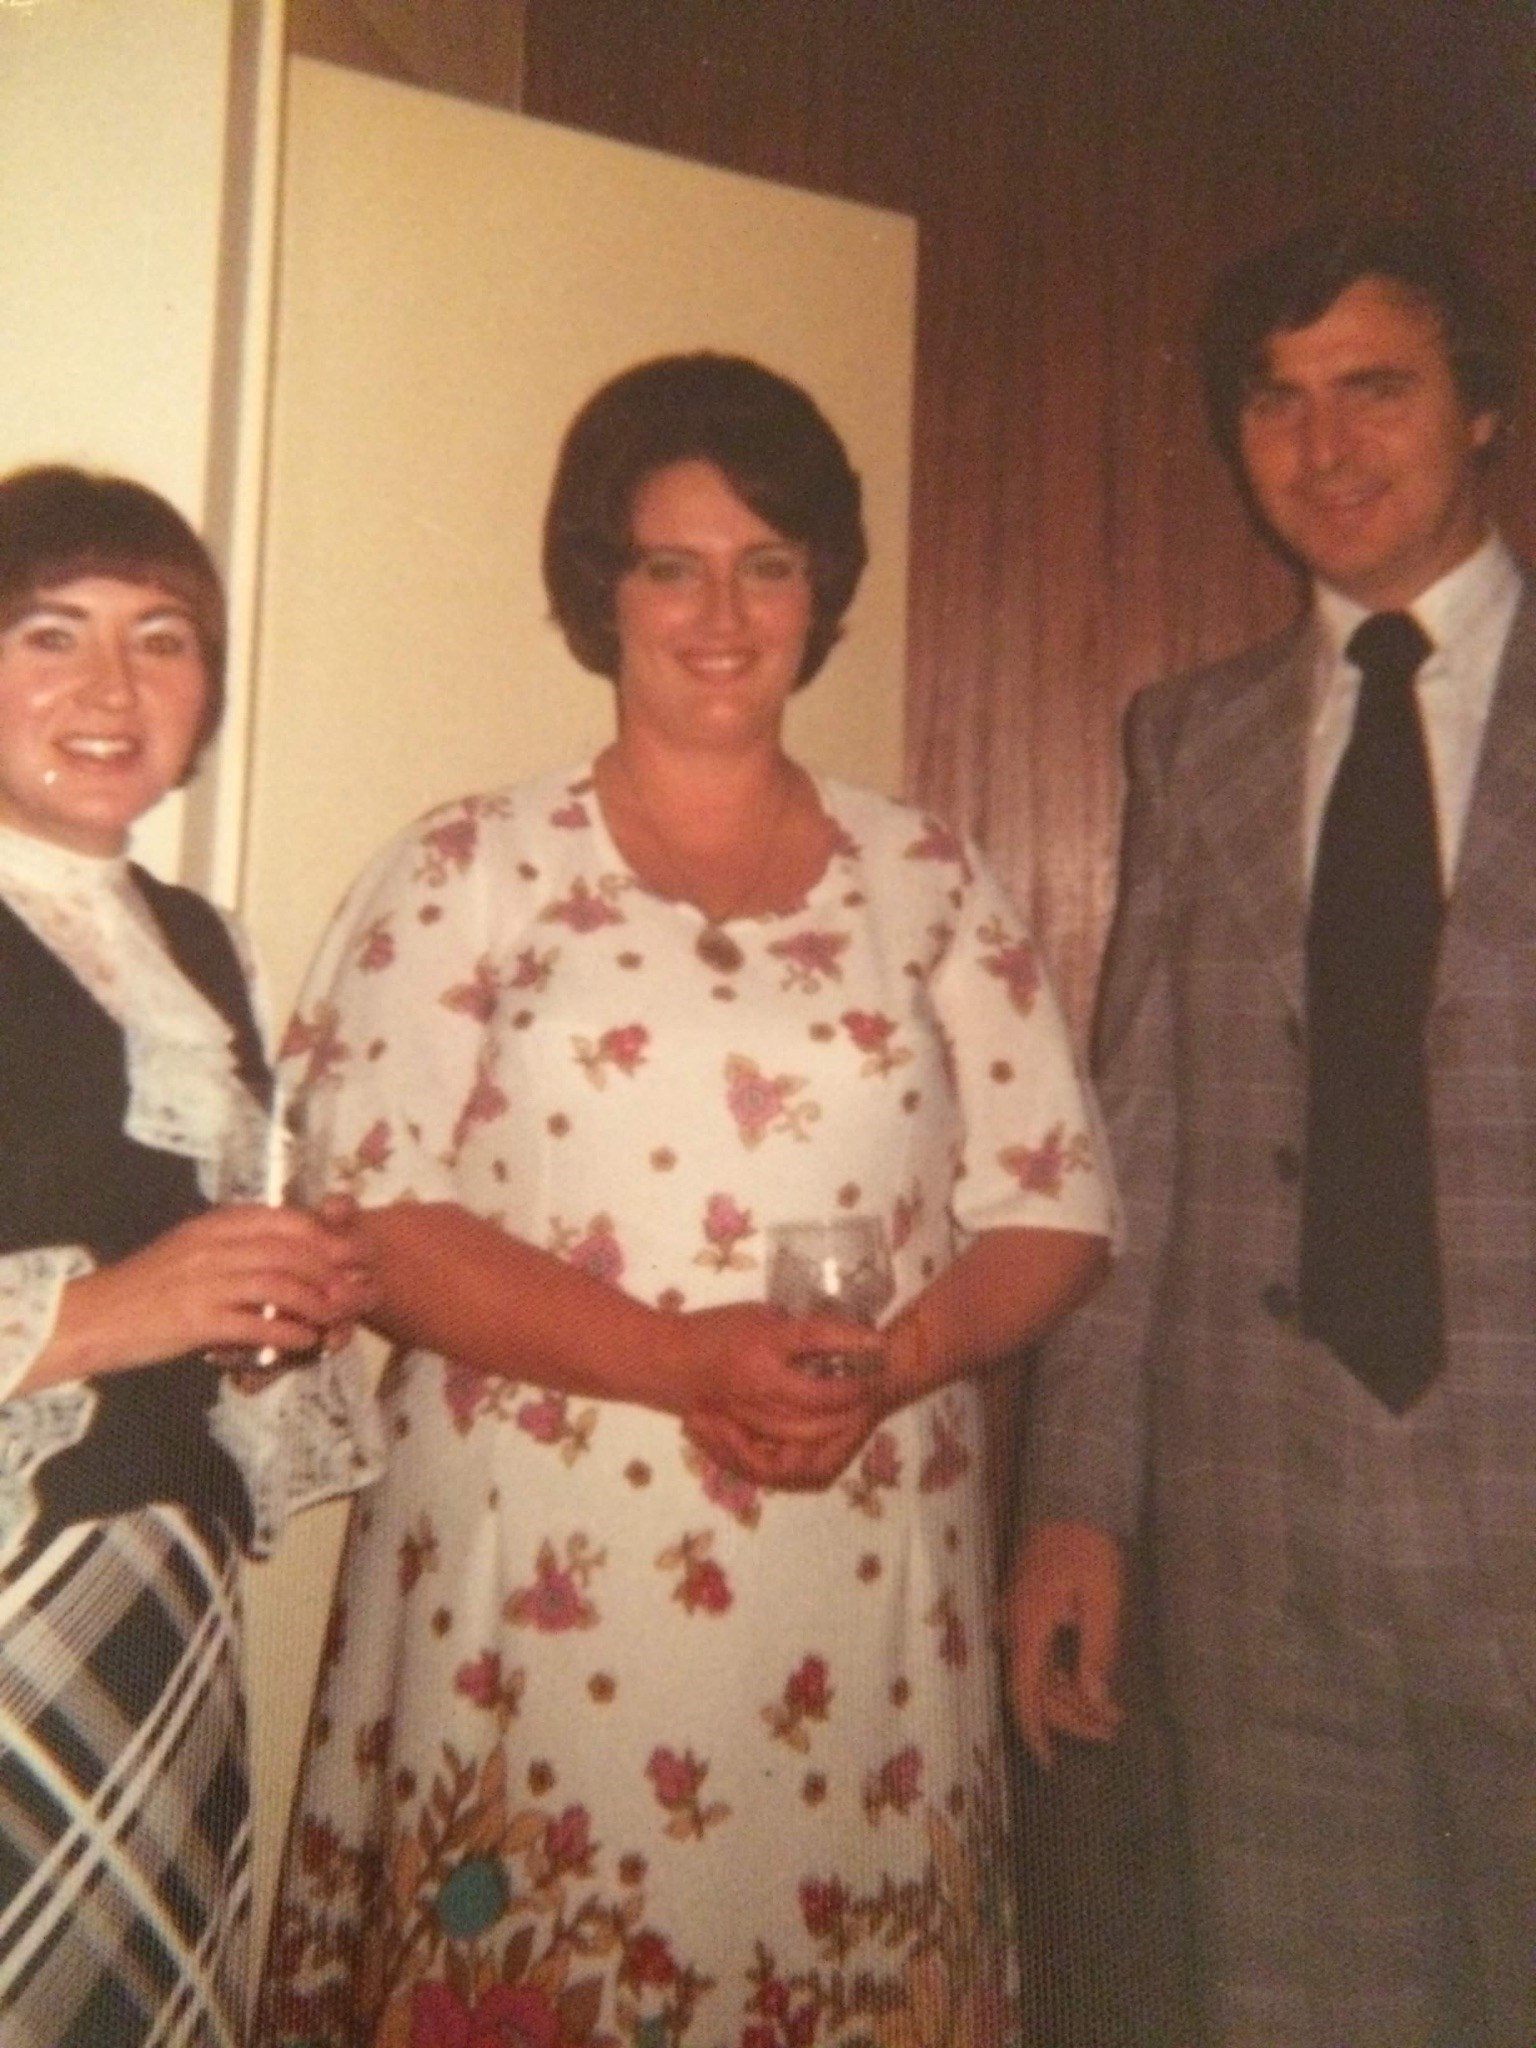 Rocking the checked suit and kipper tie with Mum and Carol